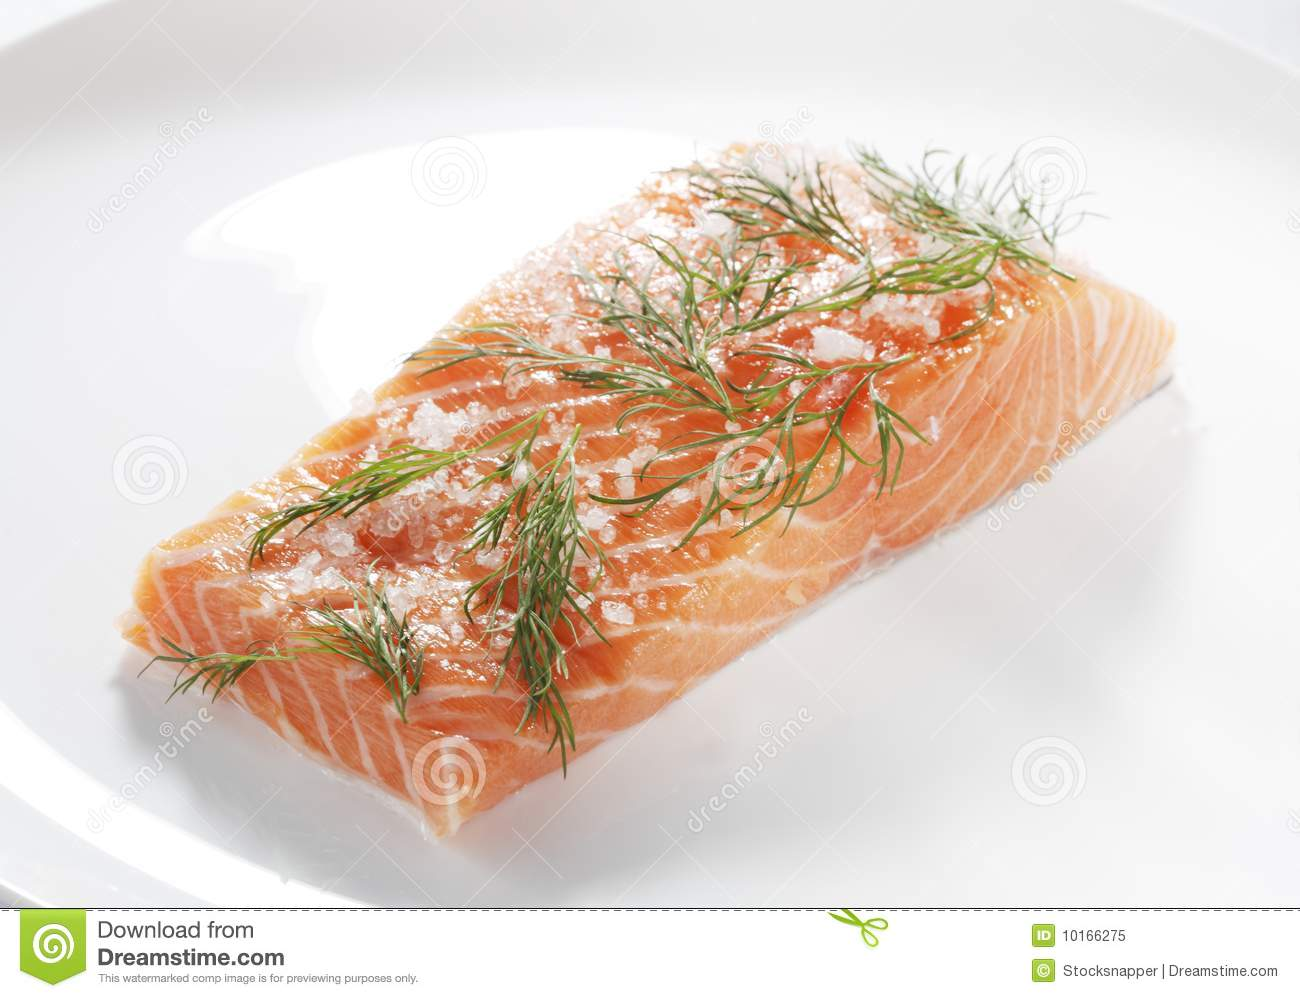 Salt cured salmon royalty free stock photo image 10166275 for Salt cured fish